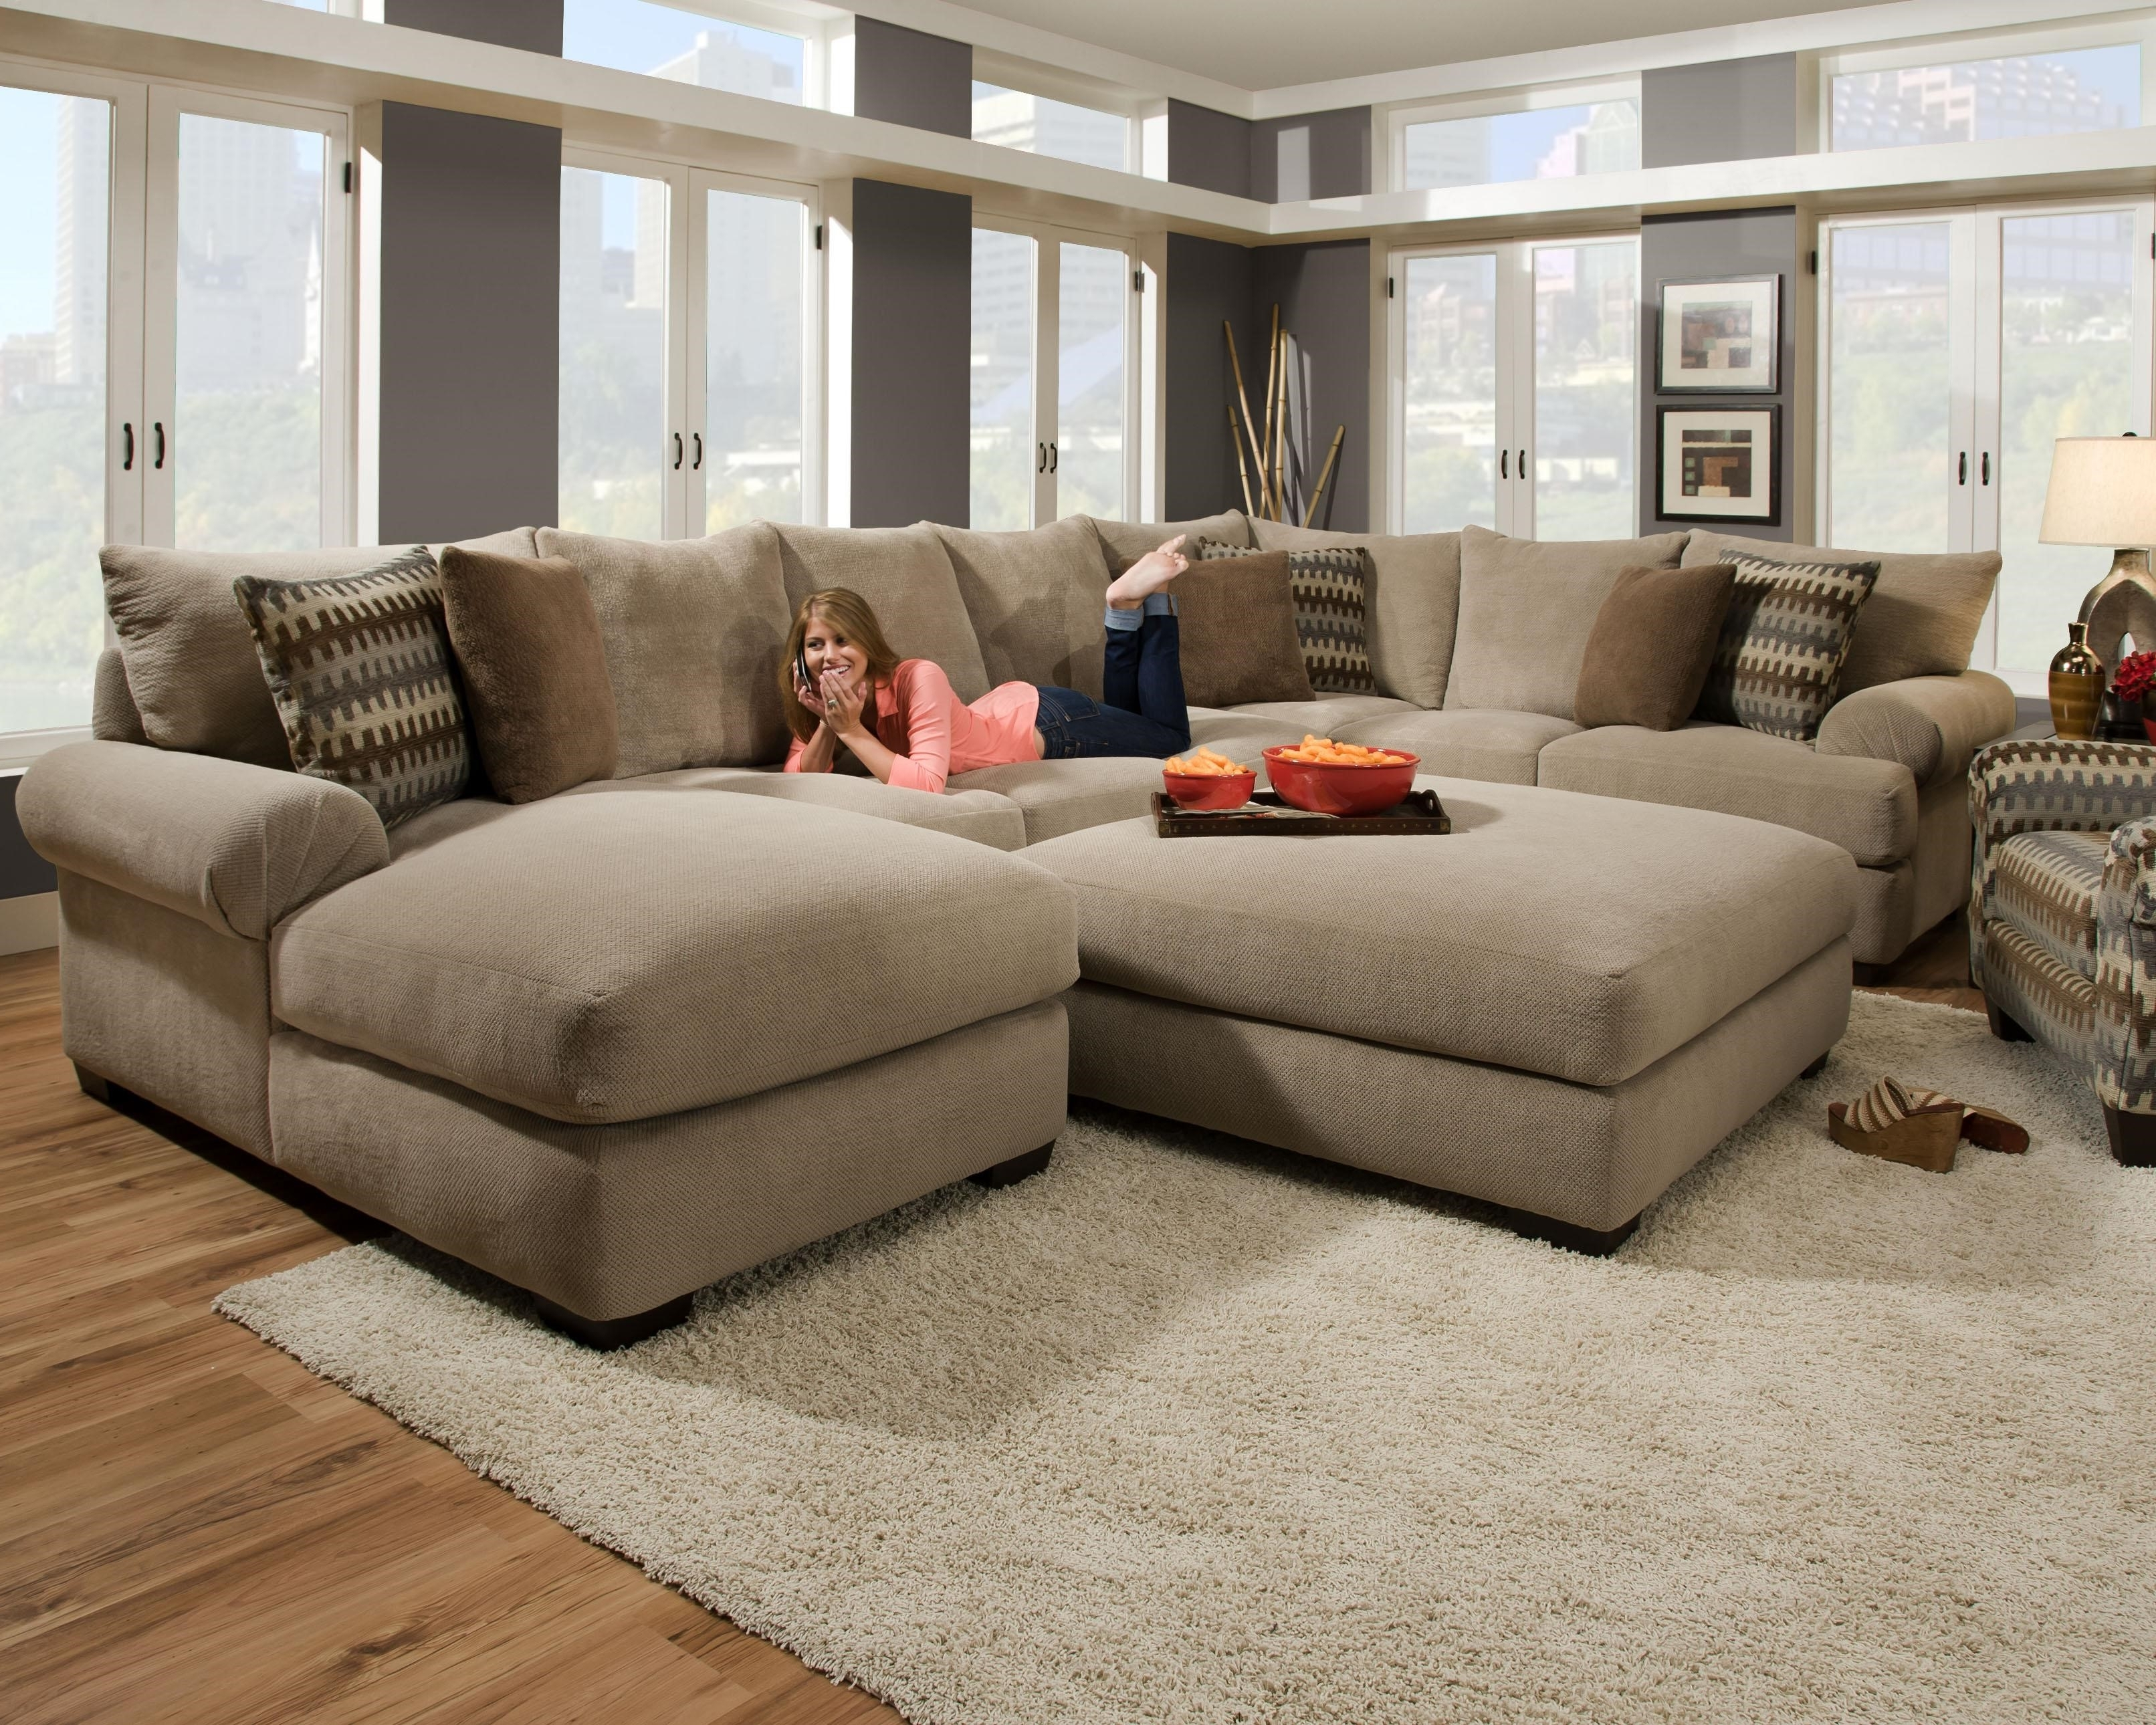 Couches With Large Ottoman Within Favorite Good Sectional Sofa With Large Ottoman 42 For Are Sectional Sofas (View 6 of 15)